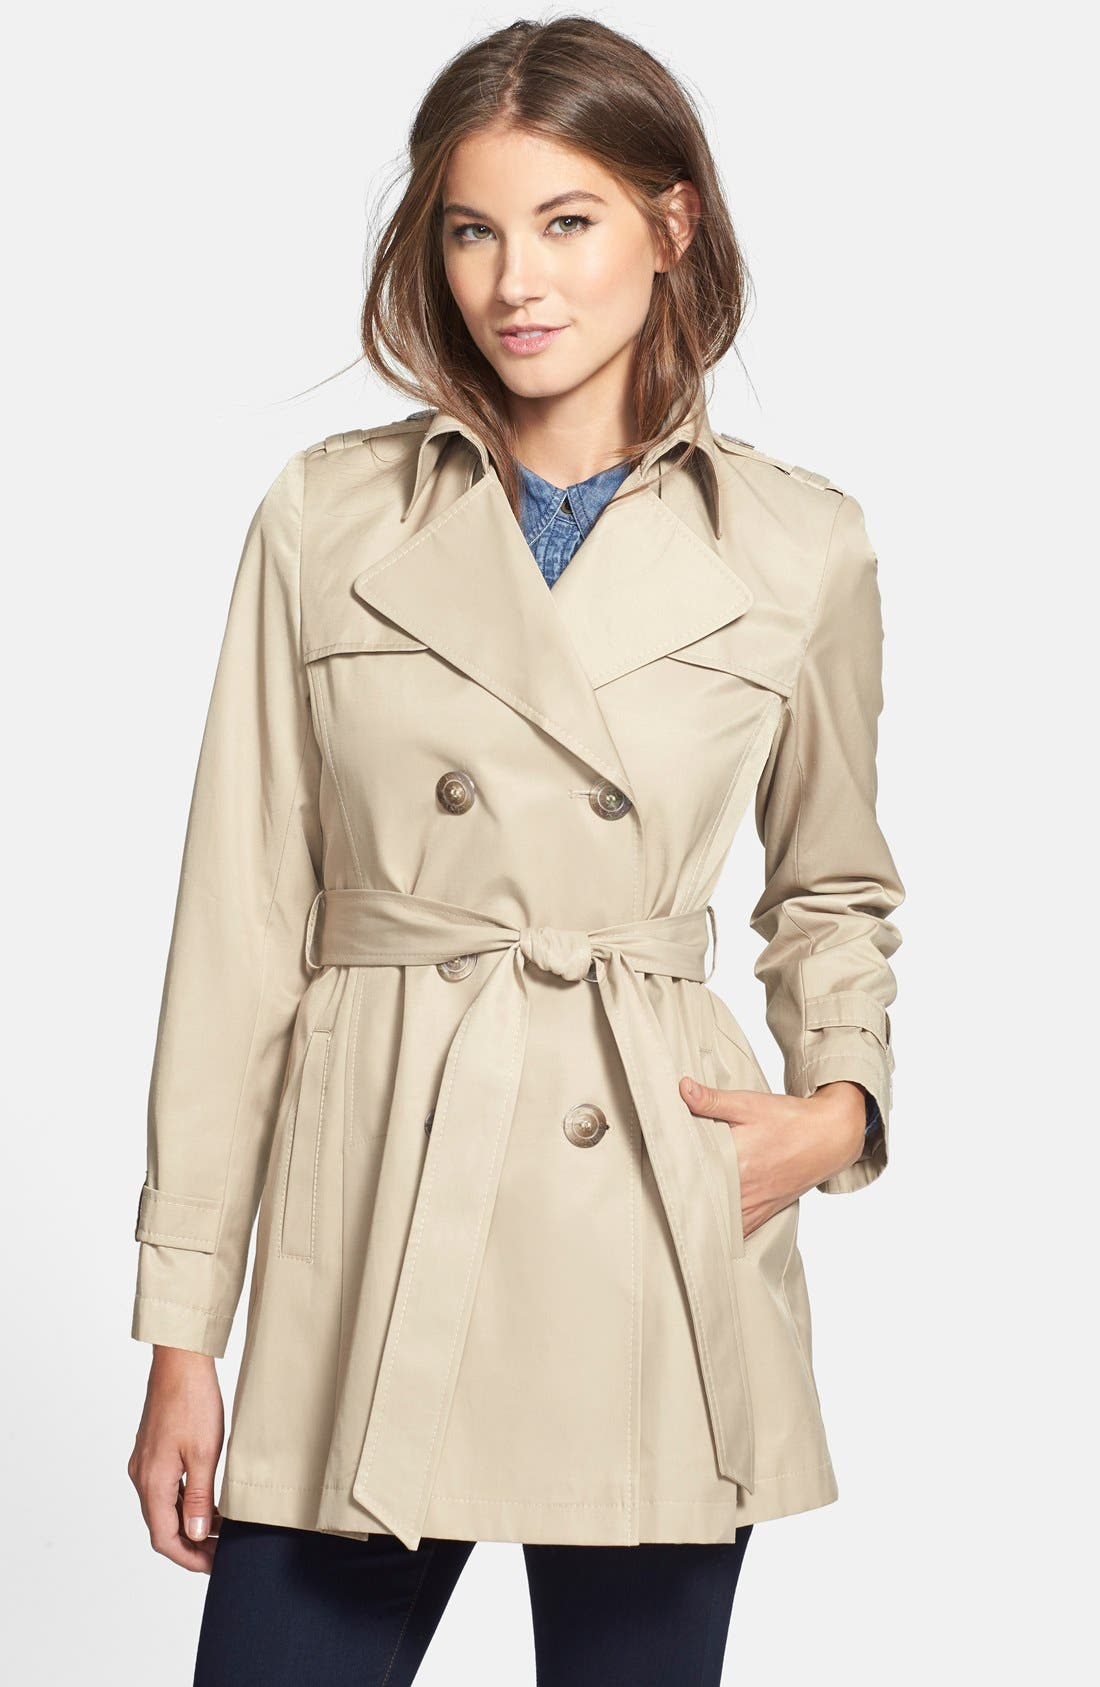 Alternate Image 1 Selected - DKNY Double Breasted Trench Coat (Regular & Petite) (Online Only)